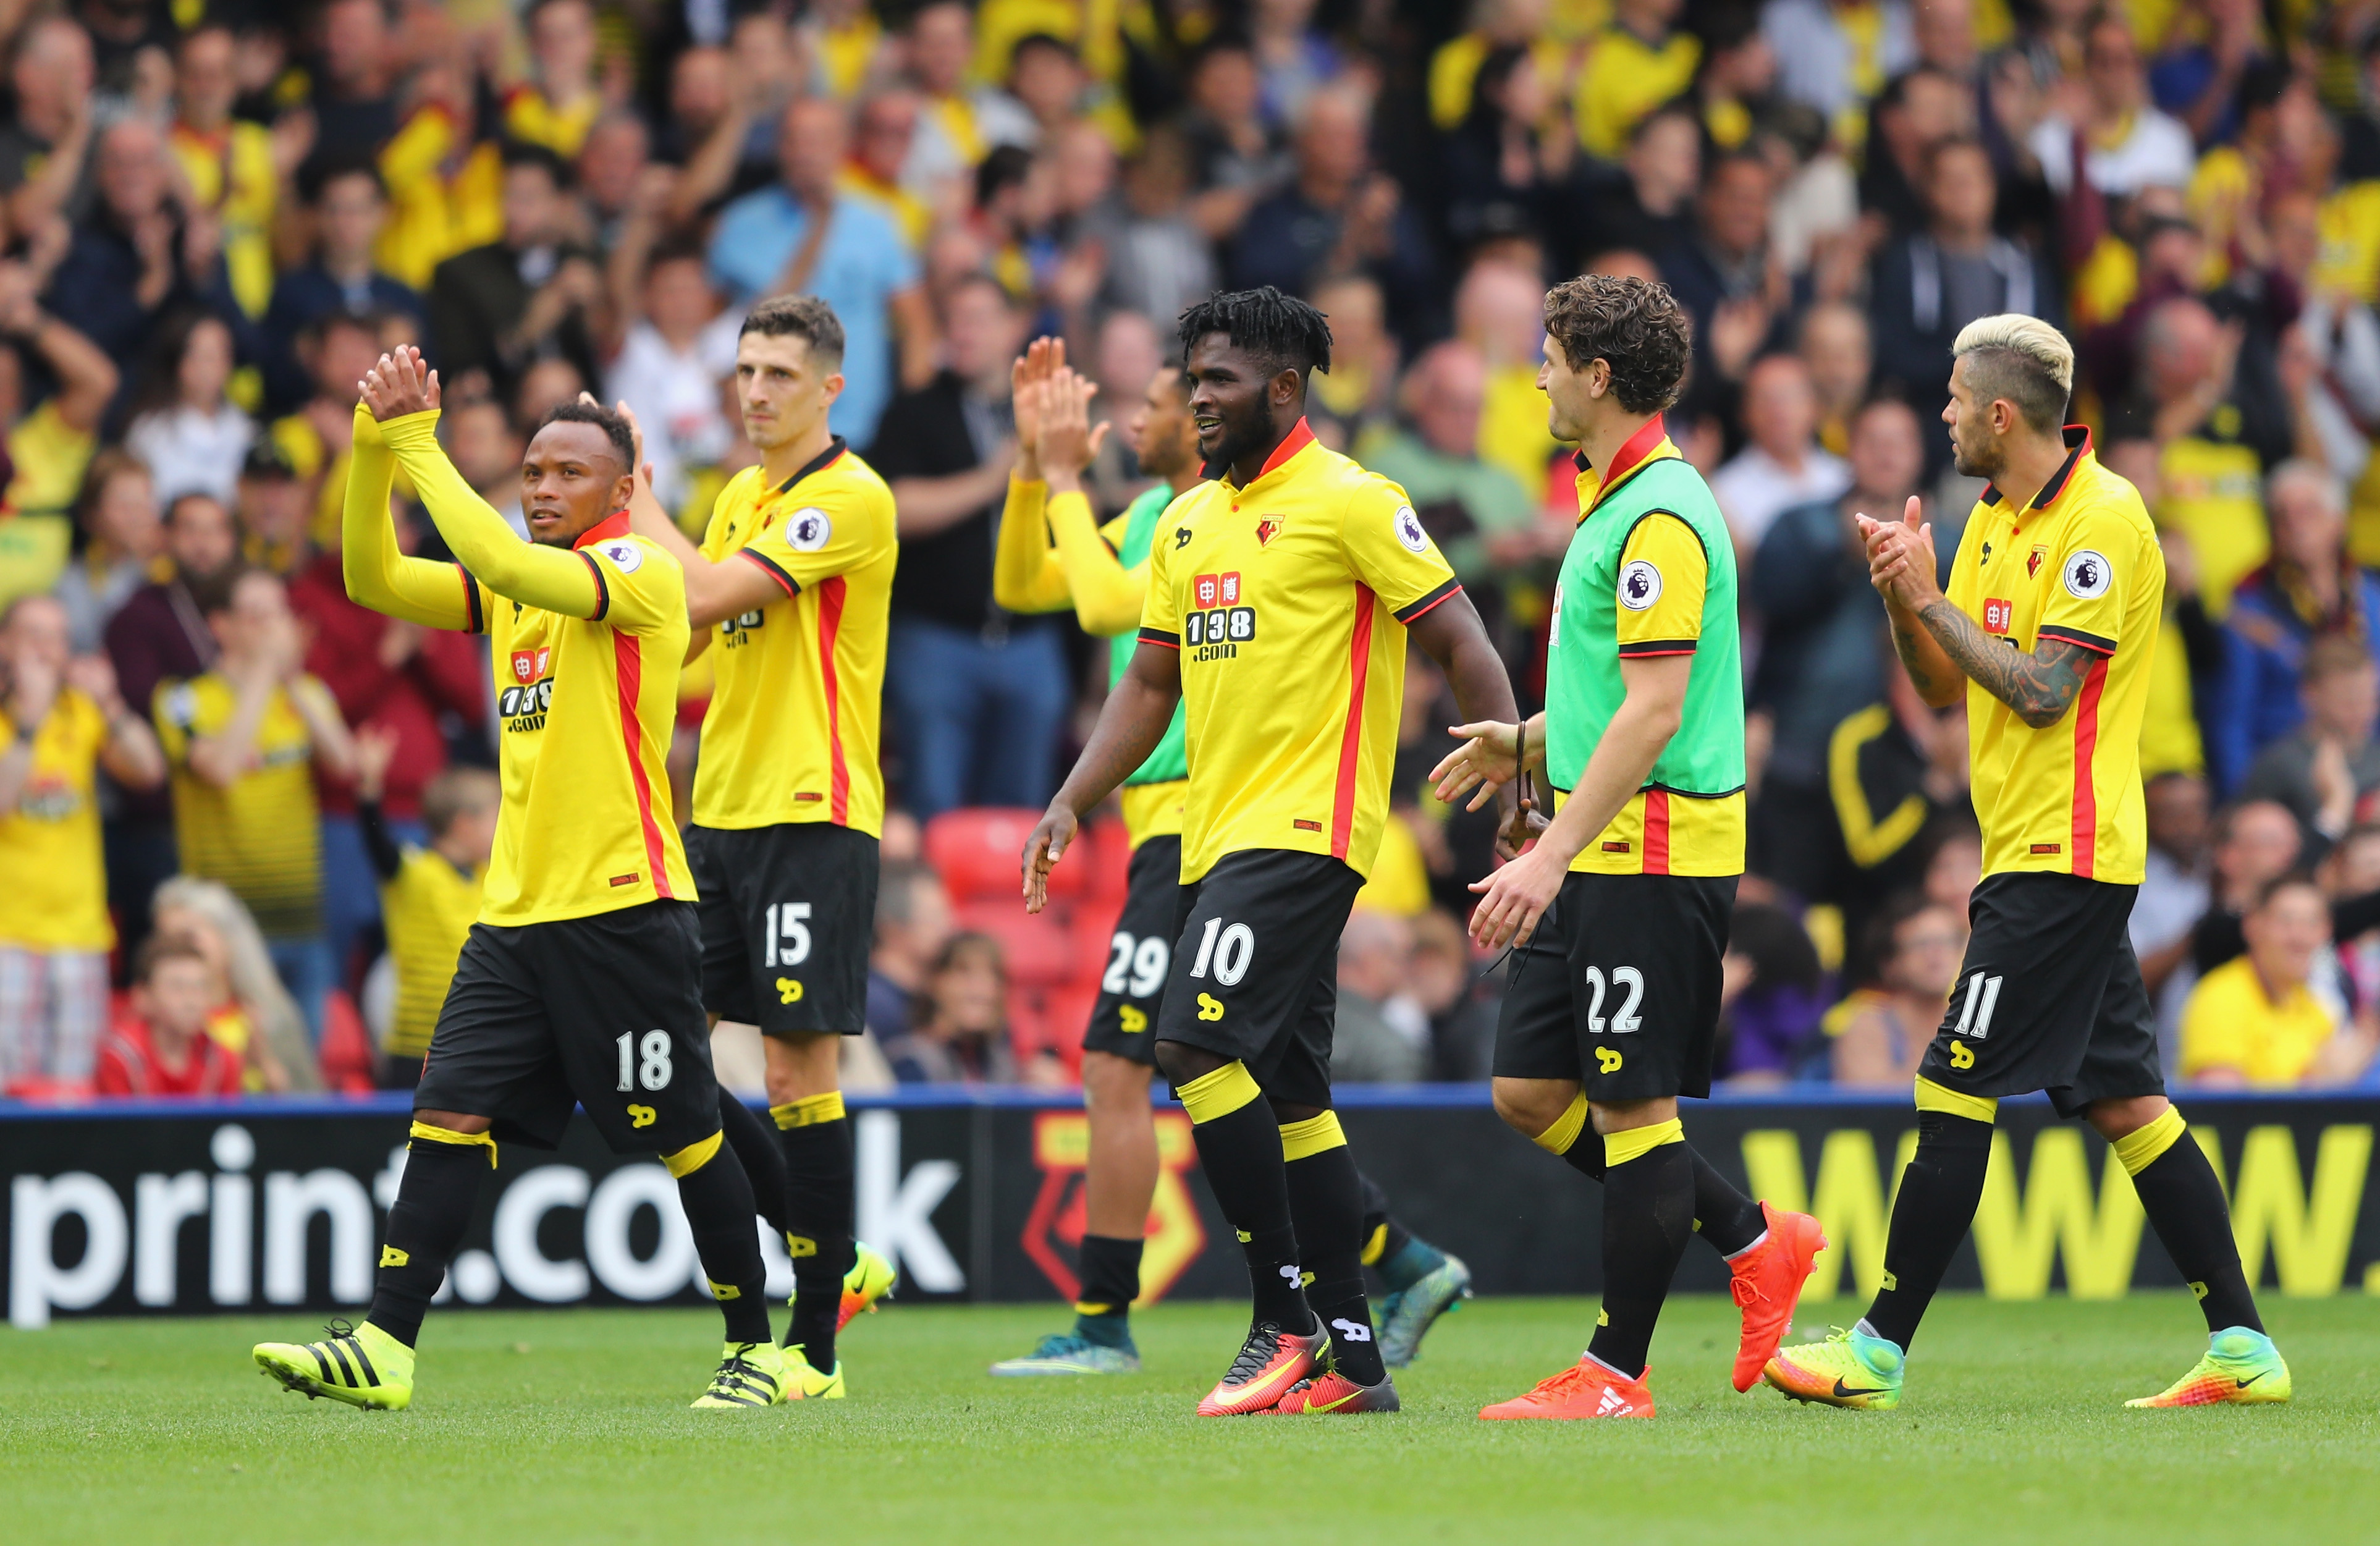 WATFORD, ENGLAND - SEPTEMBER 18: The Watford players clap the fans as they make their way into the tunnel during the Premier League match between Watford and Manchester United at Vicarage Road on September 18, 2016 in Watford, England. (Photo by Richard Heathcote/Getty Images)